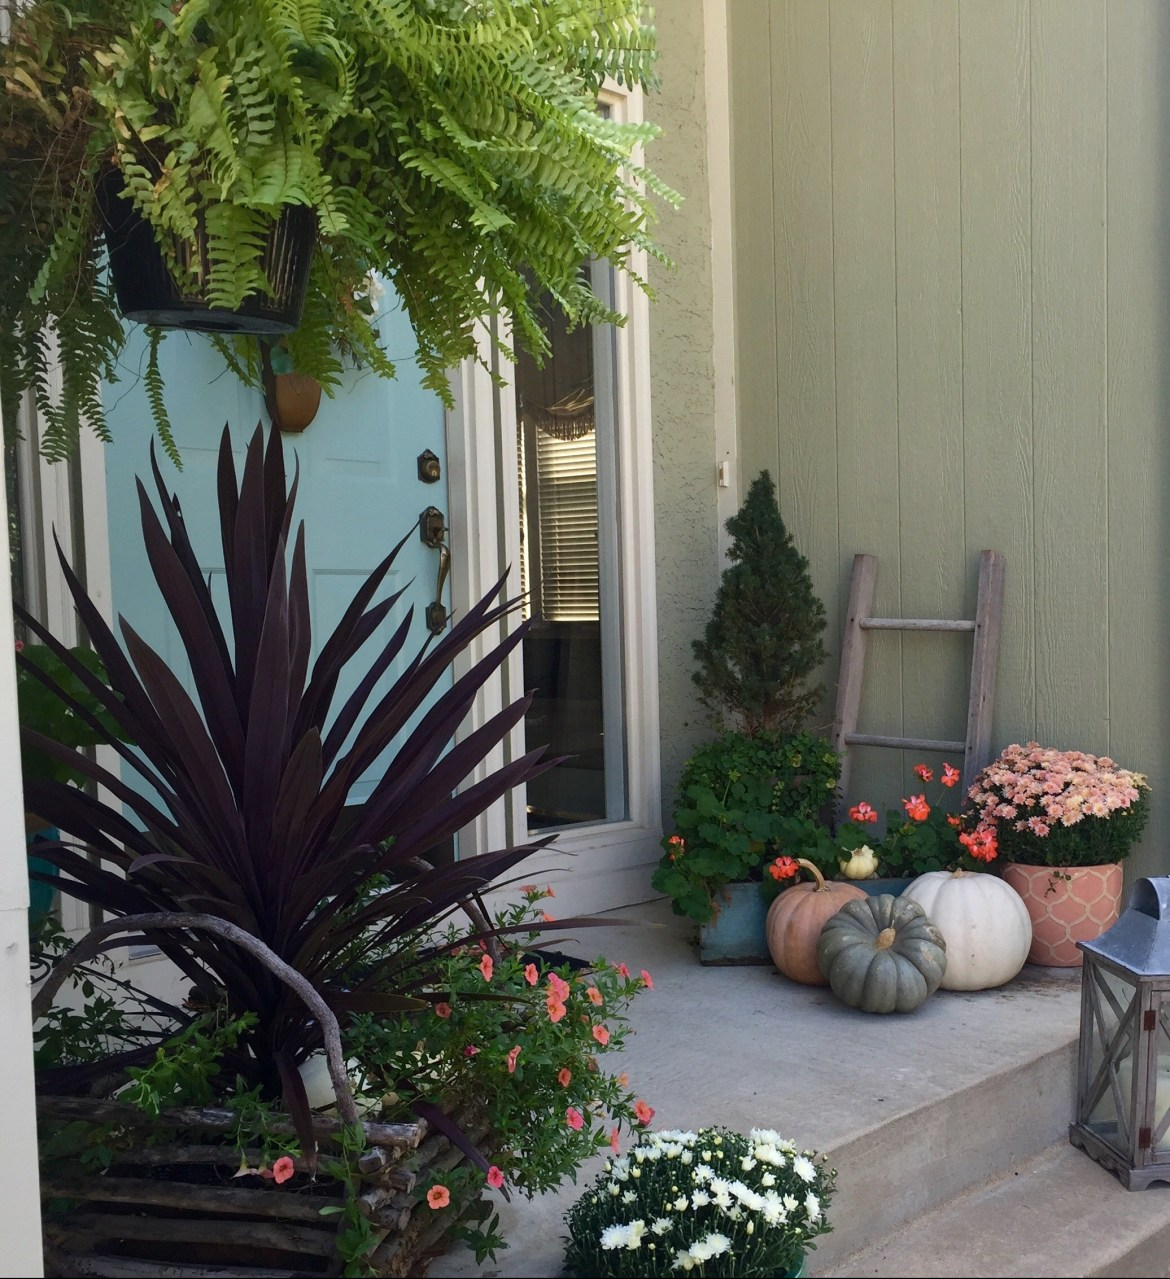 White Pumpkins and Blush colored Mums are great Fall Decor Ideas for the front porch